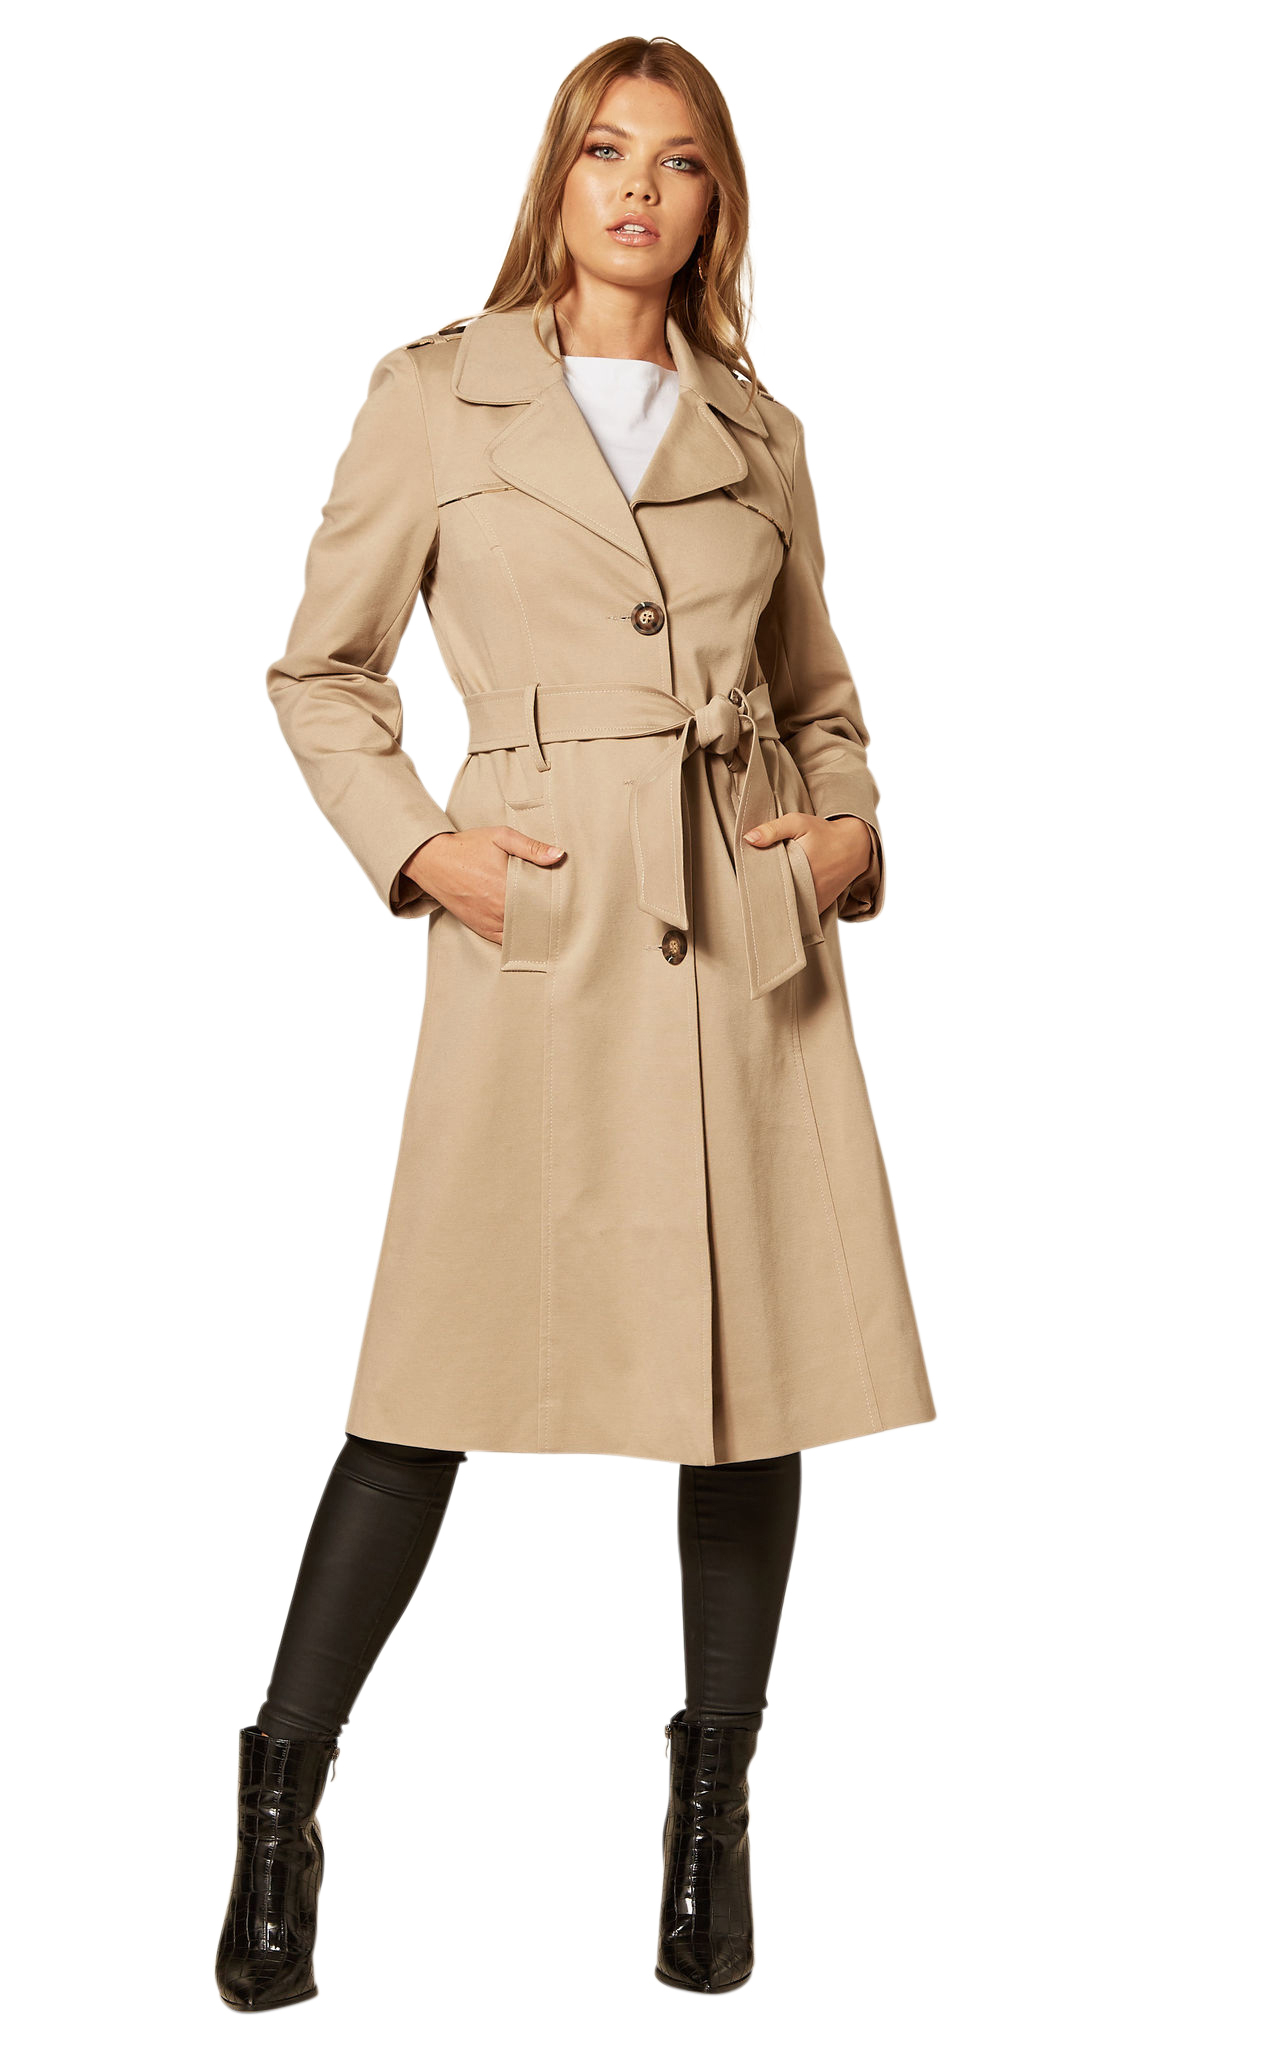 De La Creme - Women's Belted Trench Coat Raincoat